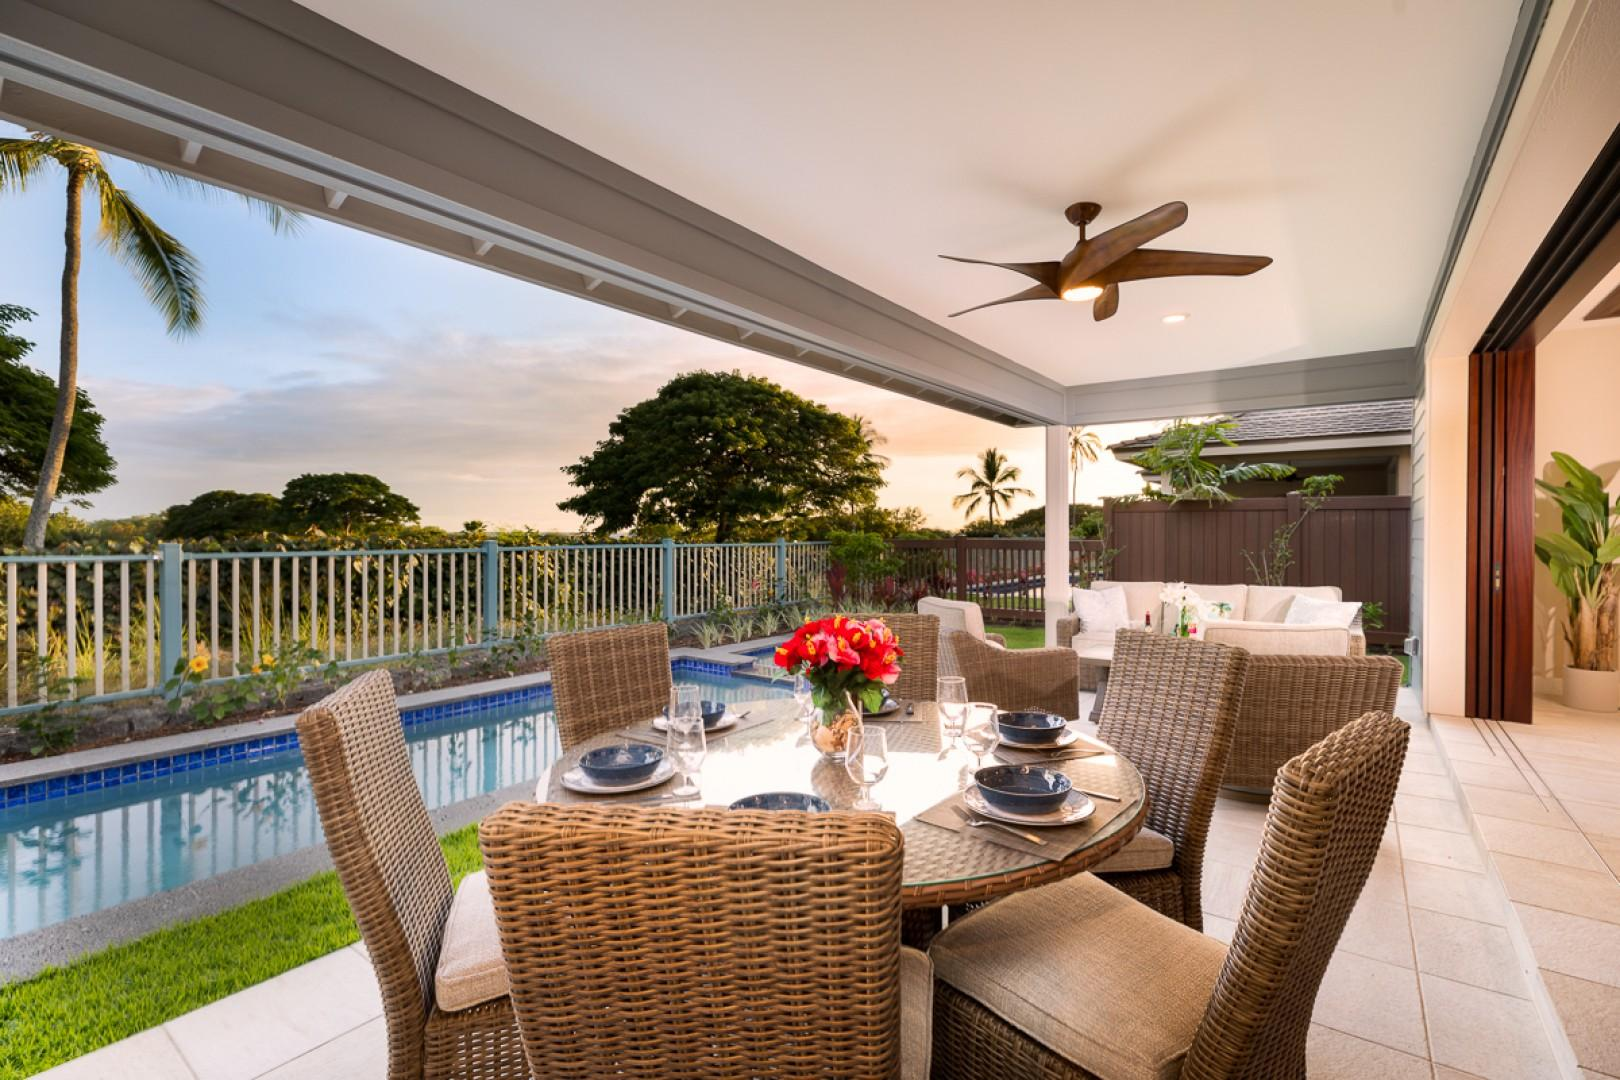 Enjoy open-air meals poolside on the covered lanai